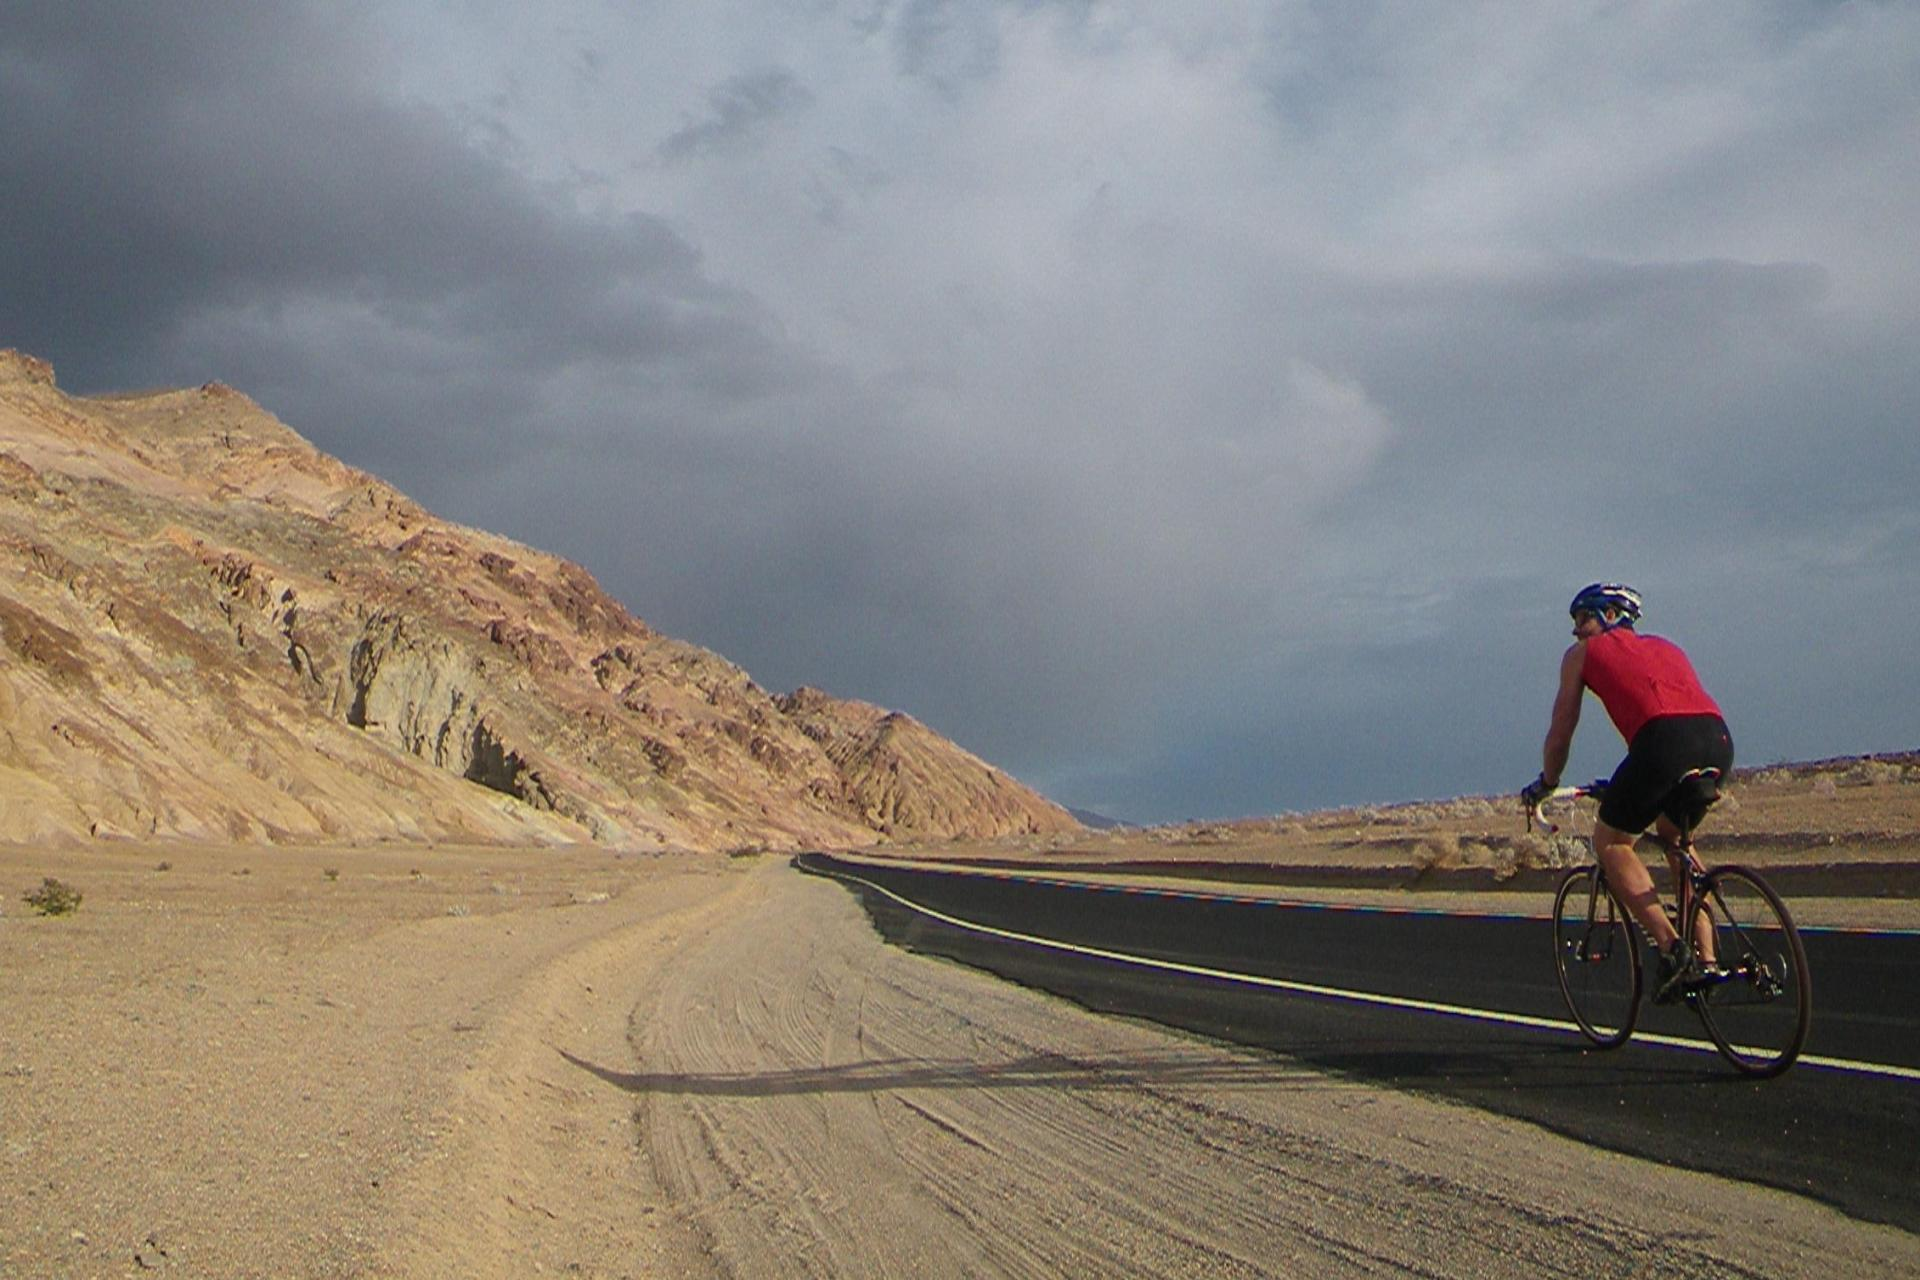 Lone cyclist on the roads of Death Valley